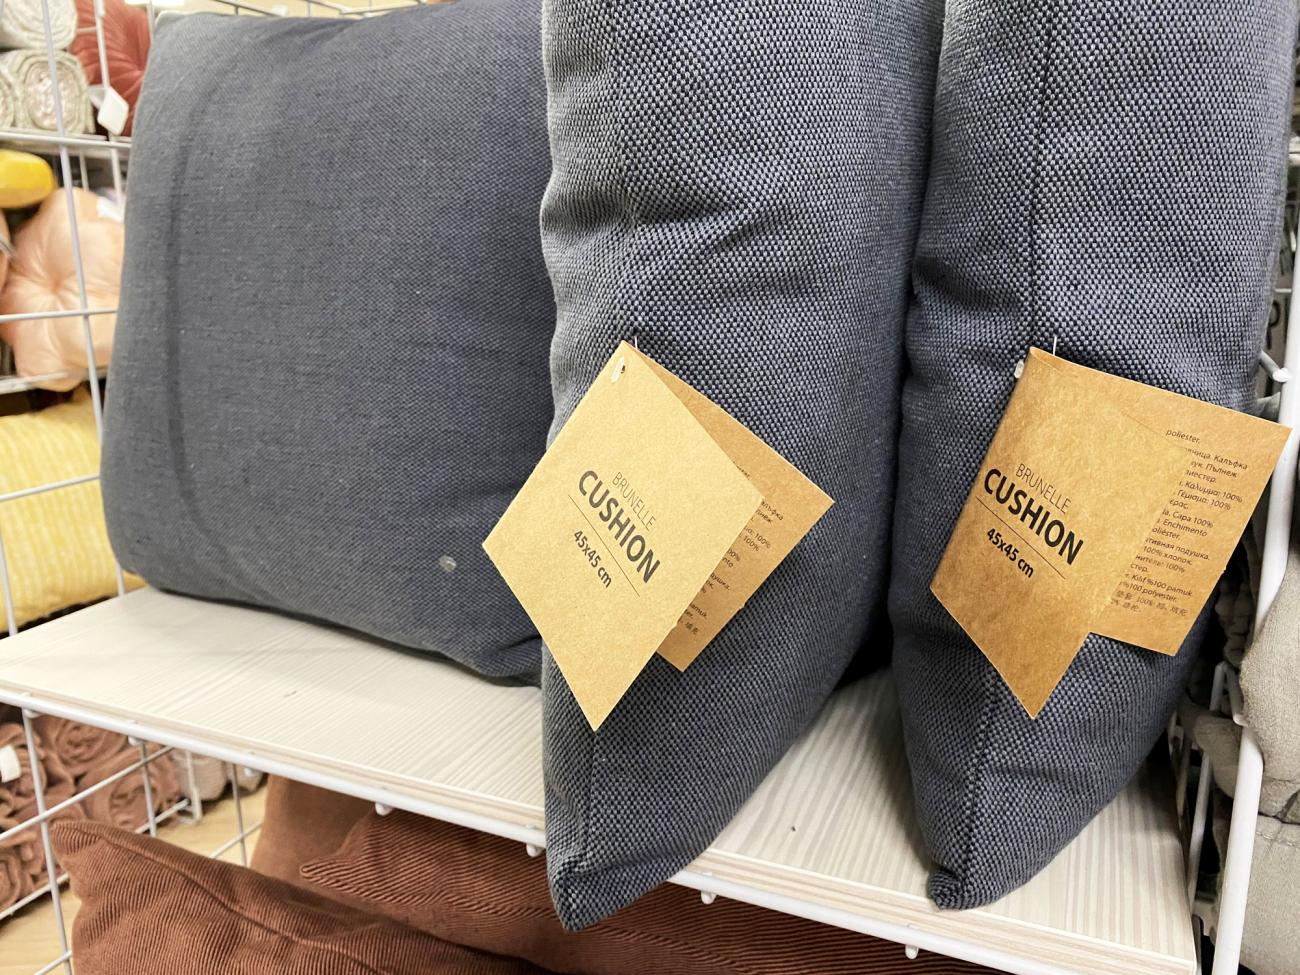 Pillows will get a simple and more sustainable name tag with information for the customers.